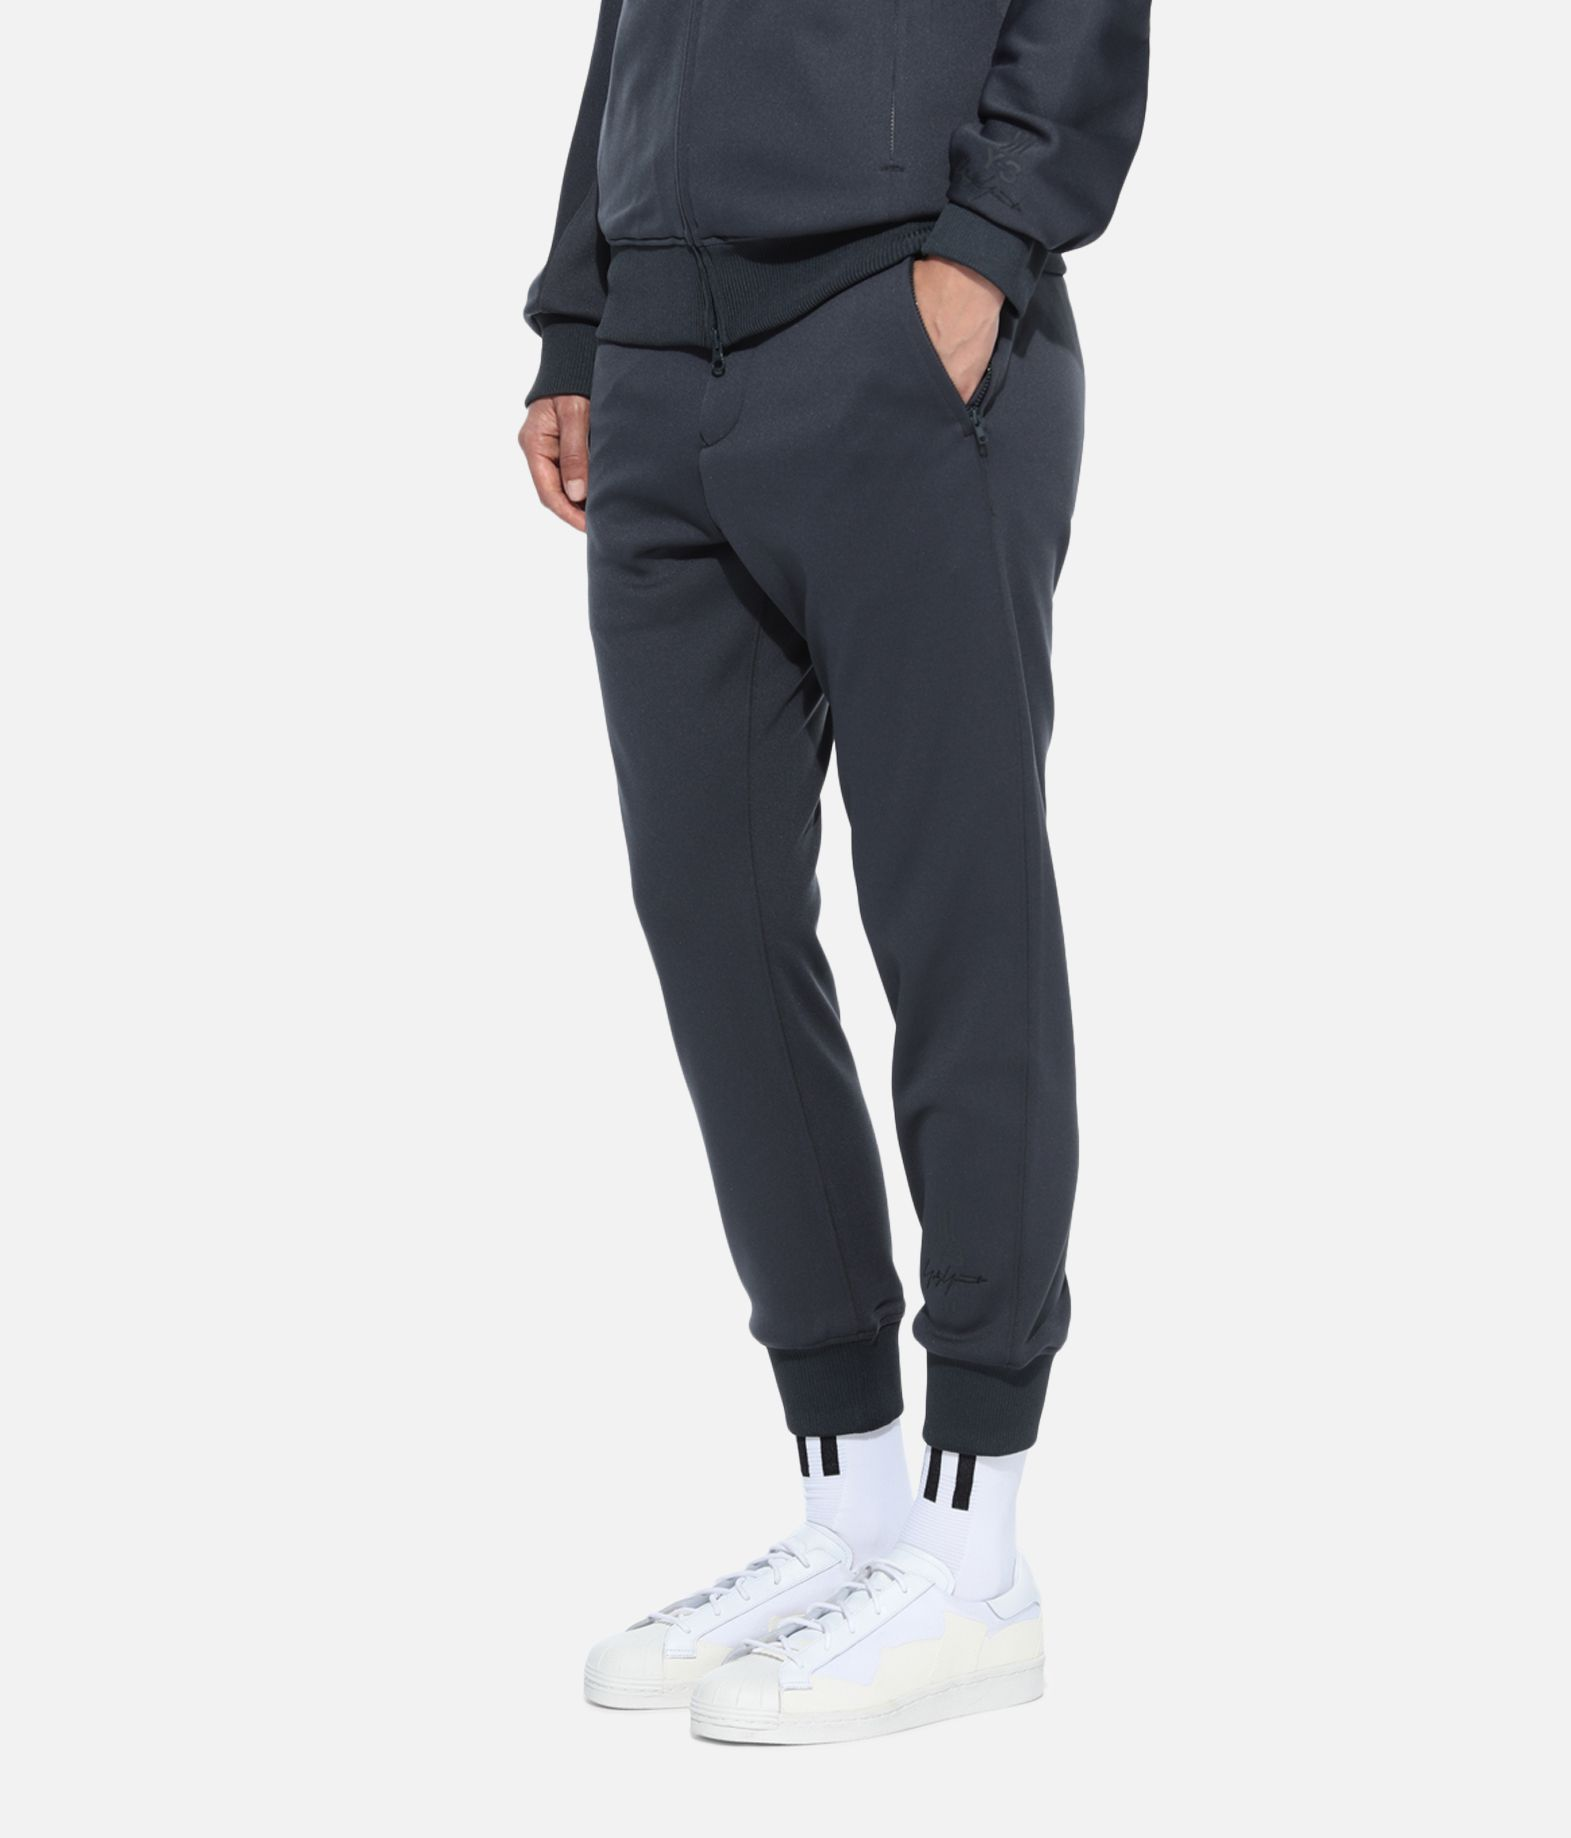 Y-3 Y-3 Classic Track Pants Sweatpants Woman e